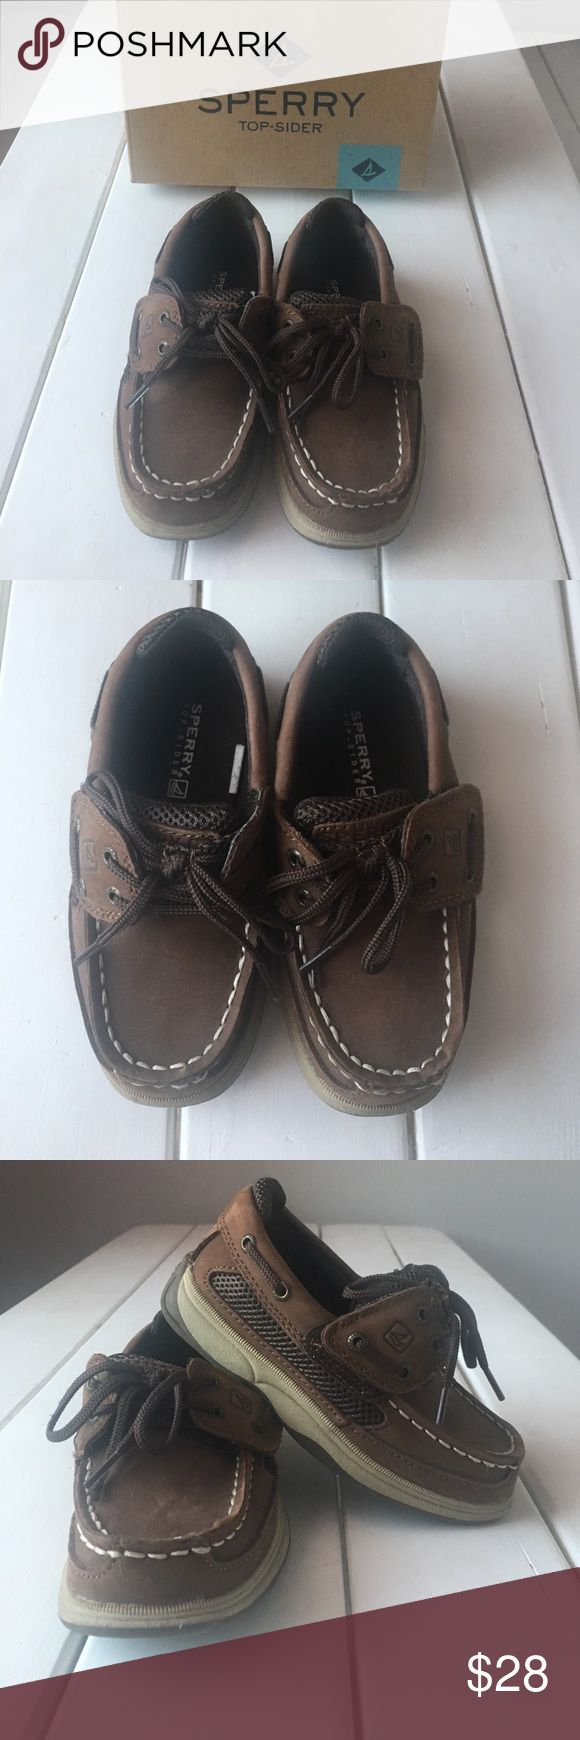 Little Boy Sperry Shoes Like New, Little Boy Sperry's. Worn twice before he outgrew them. Smoke free home.👞 Sperry Shoes Dress Shoes